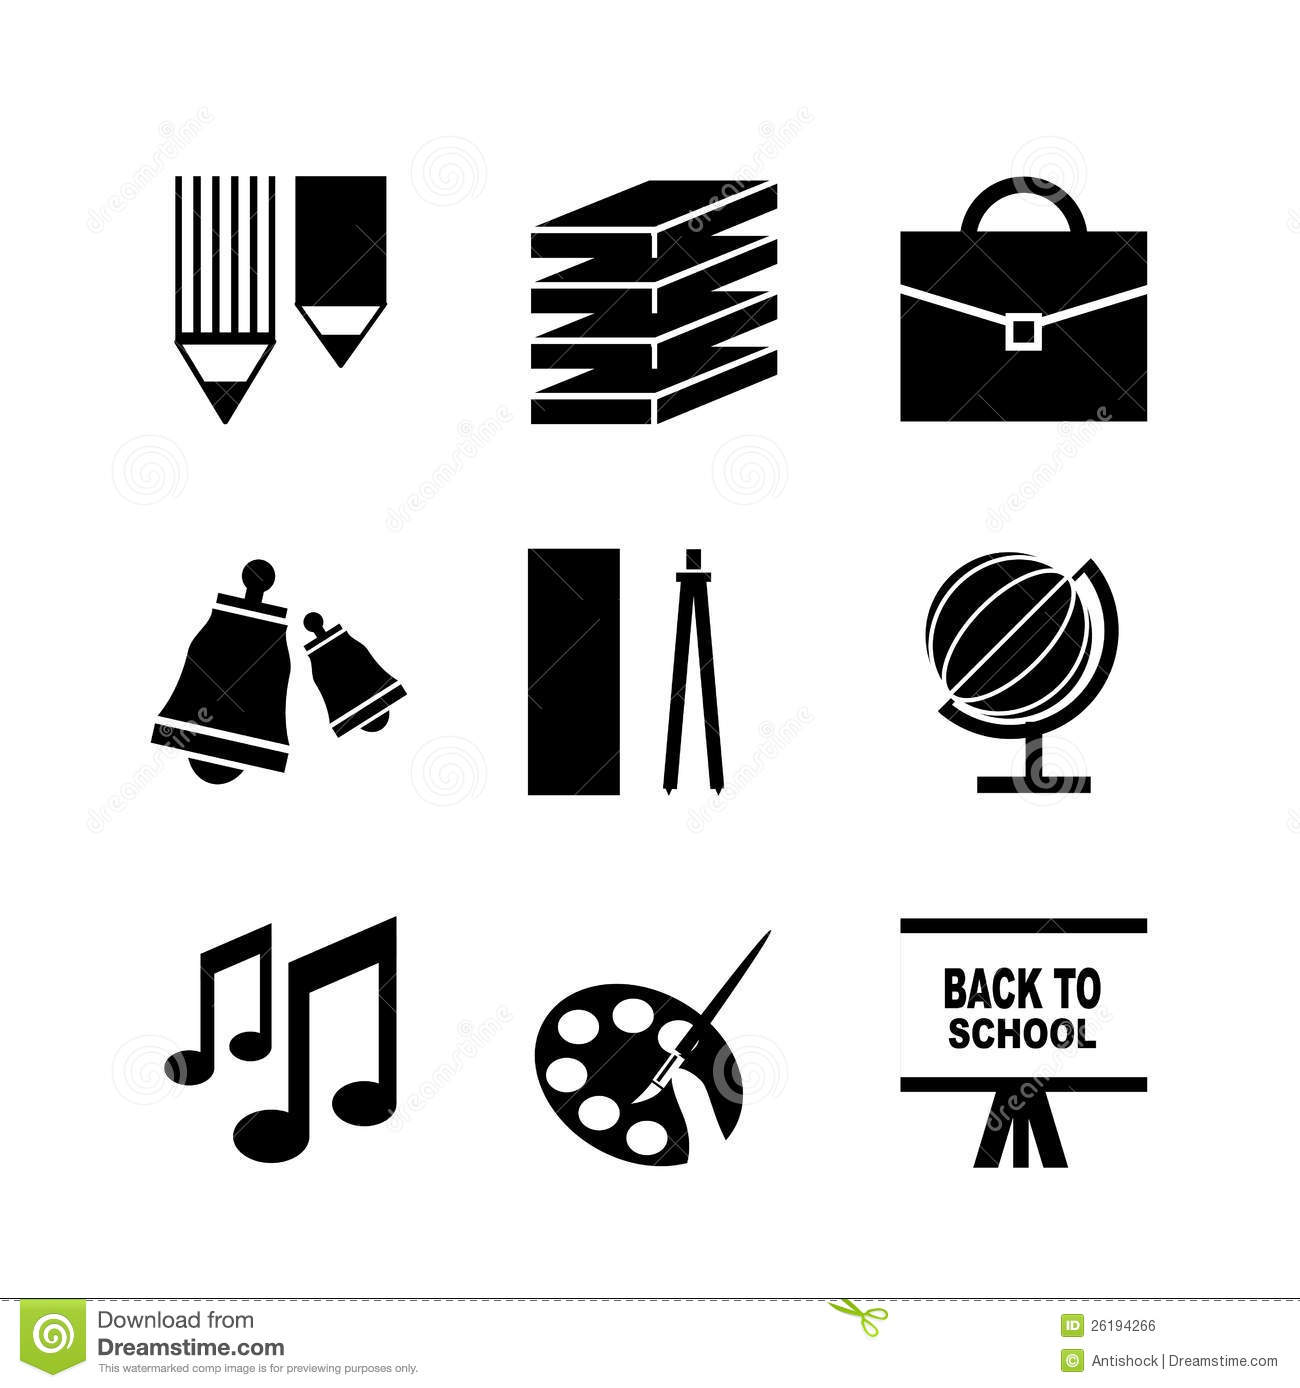 back to school vector - photo #27